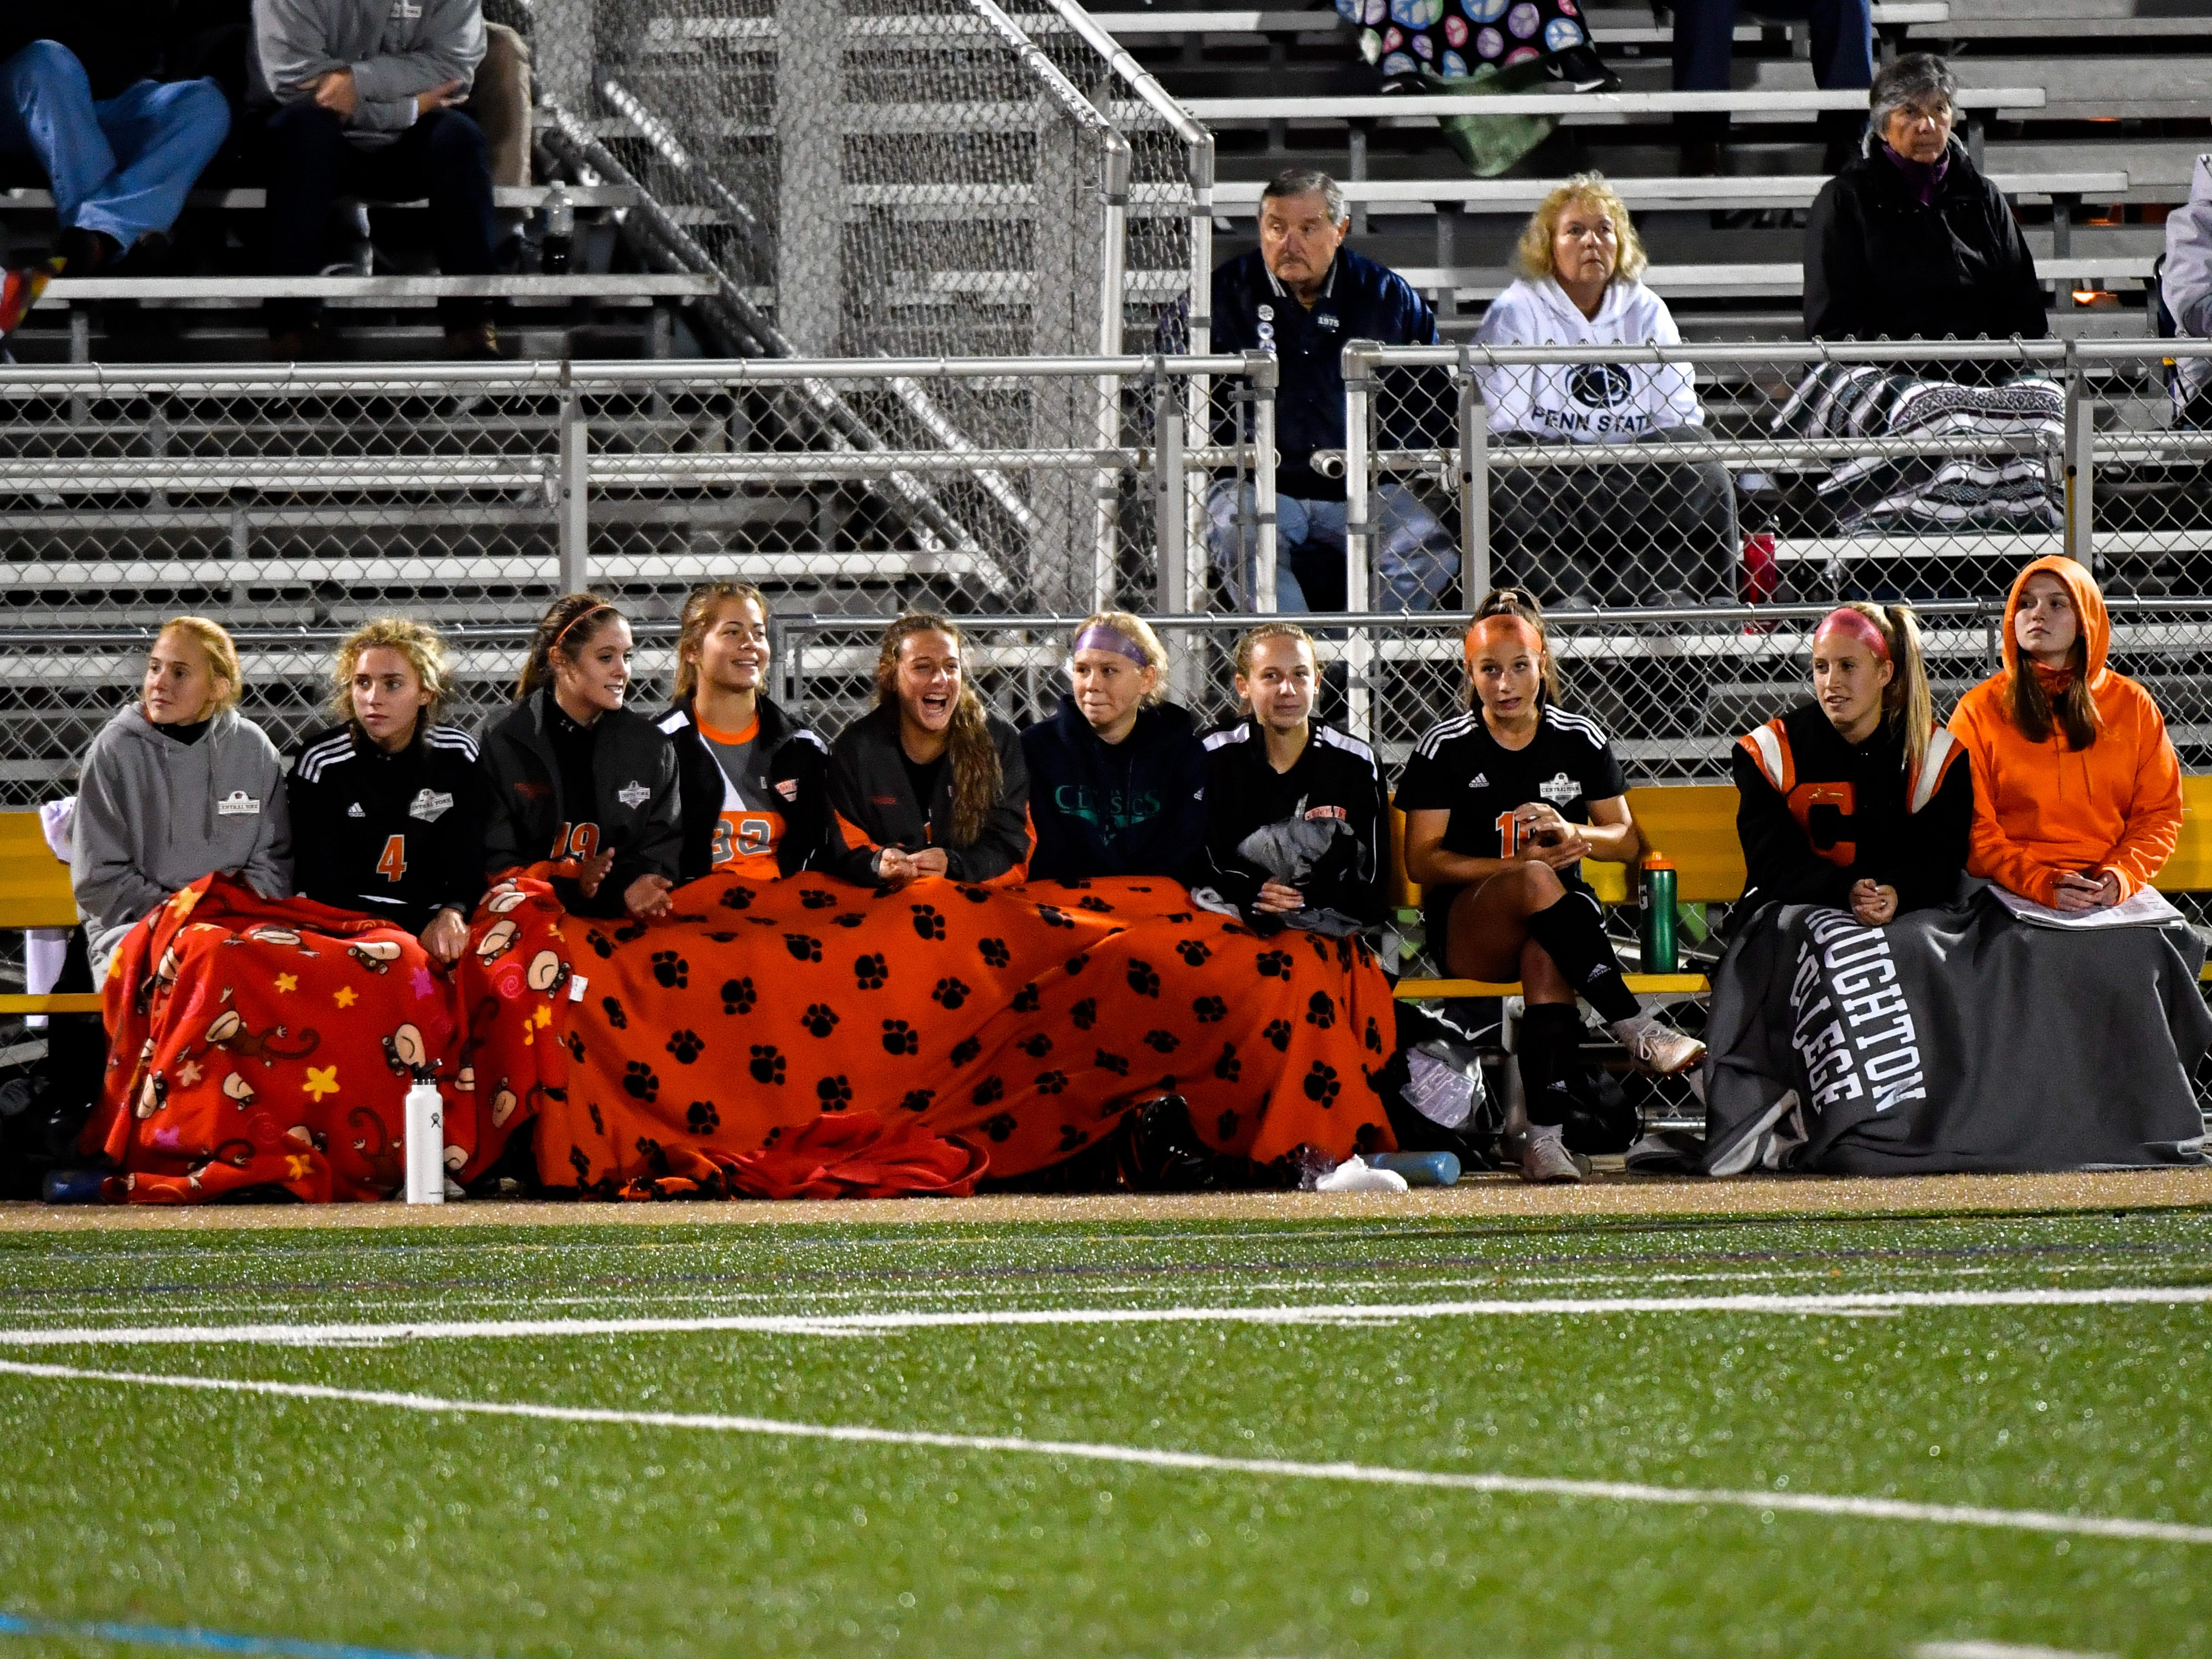 Central York tries to keep warm on the bench during the girls soccer game between Littlestown and Central York, October 16, 2018. The Panthers beat the Bolts 6-1.